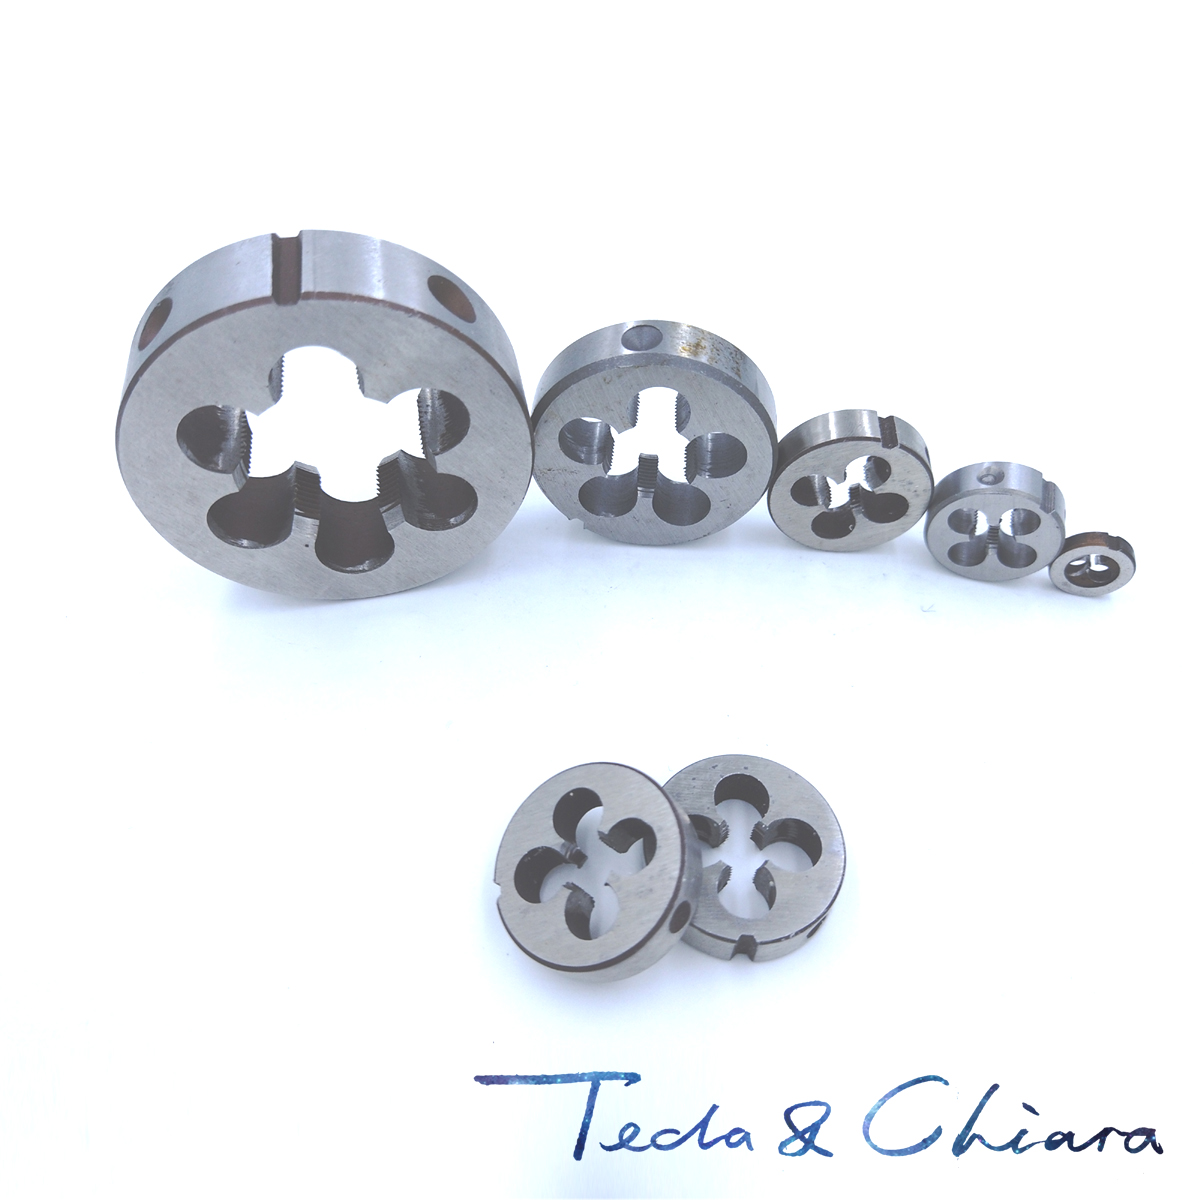 1Pc M1 M1.2 M1.4 M1.5 M1.7 M1.8 X 0.25mm 0.3mm 0.35mm Metric Right Hand Die Threading Tools For Mold Machining * 0.25 0.3 0.35